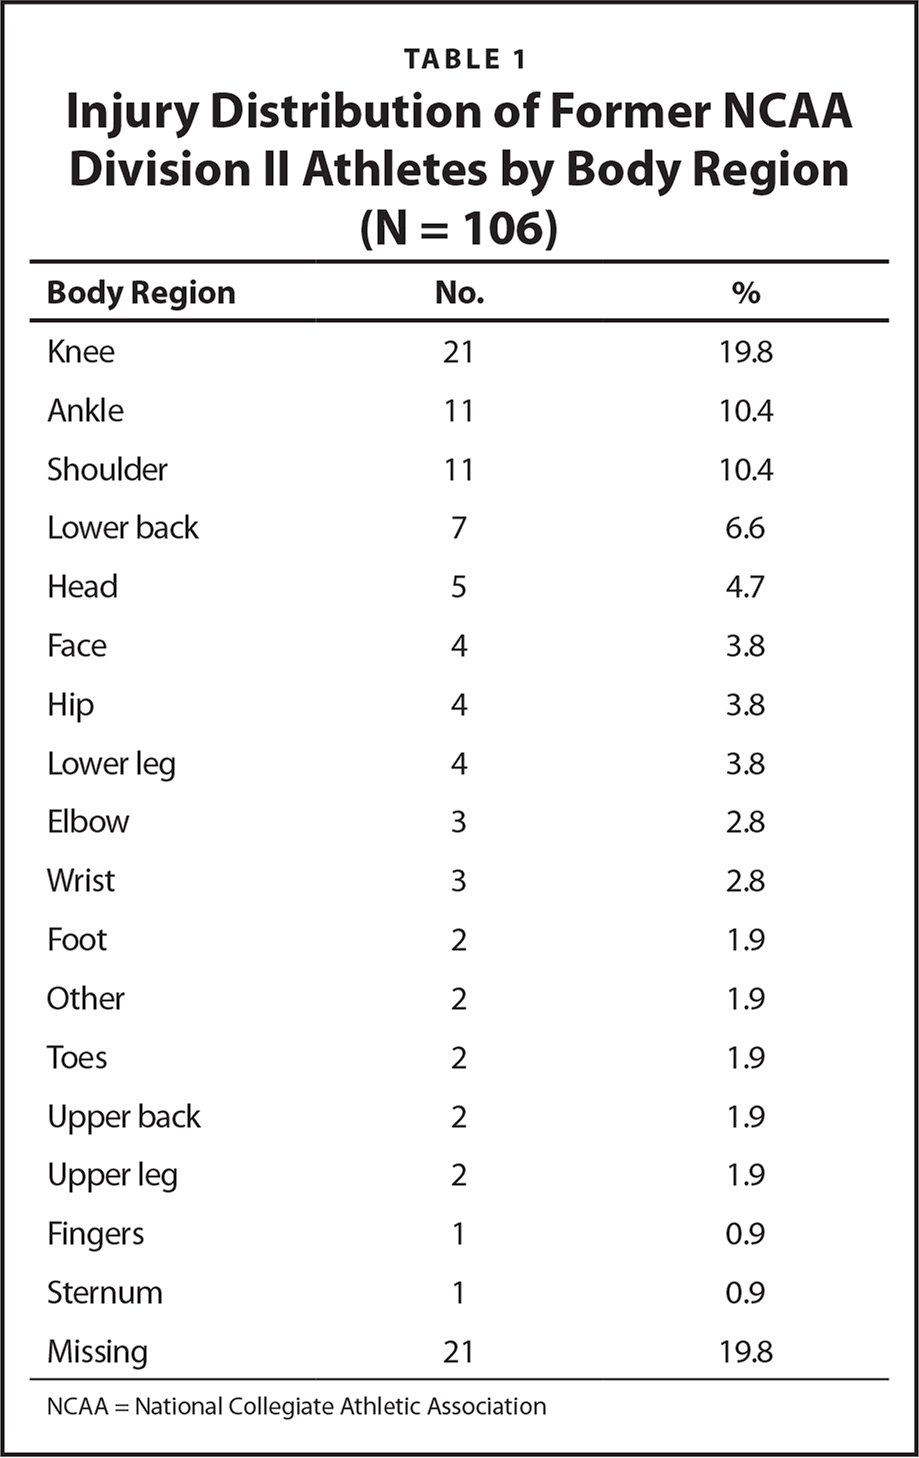 Injury Distribution of Former NCAA Division II Athletes by Body Region (N = 106)